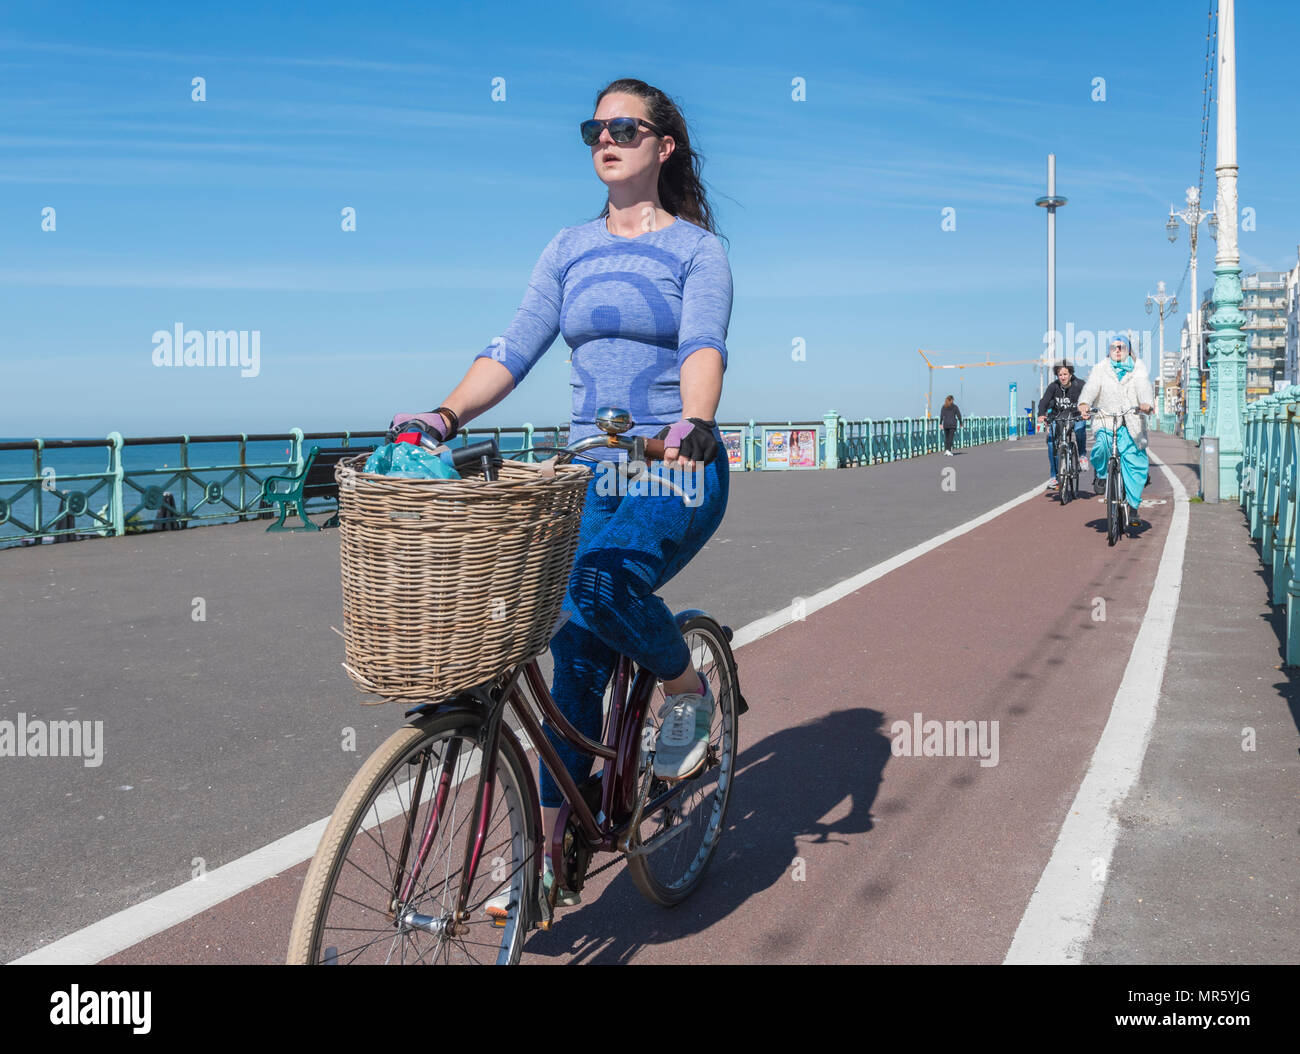 A woman cycling on a cycle path with a shopping basket, sitting upright with good posture on a bicycle lane in Brighton, East Sussex, England, UK. - Stock Image